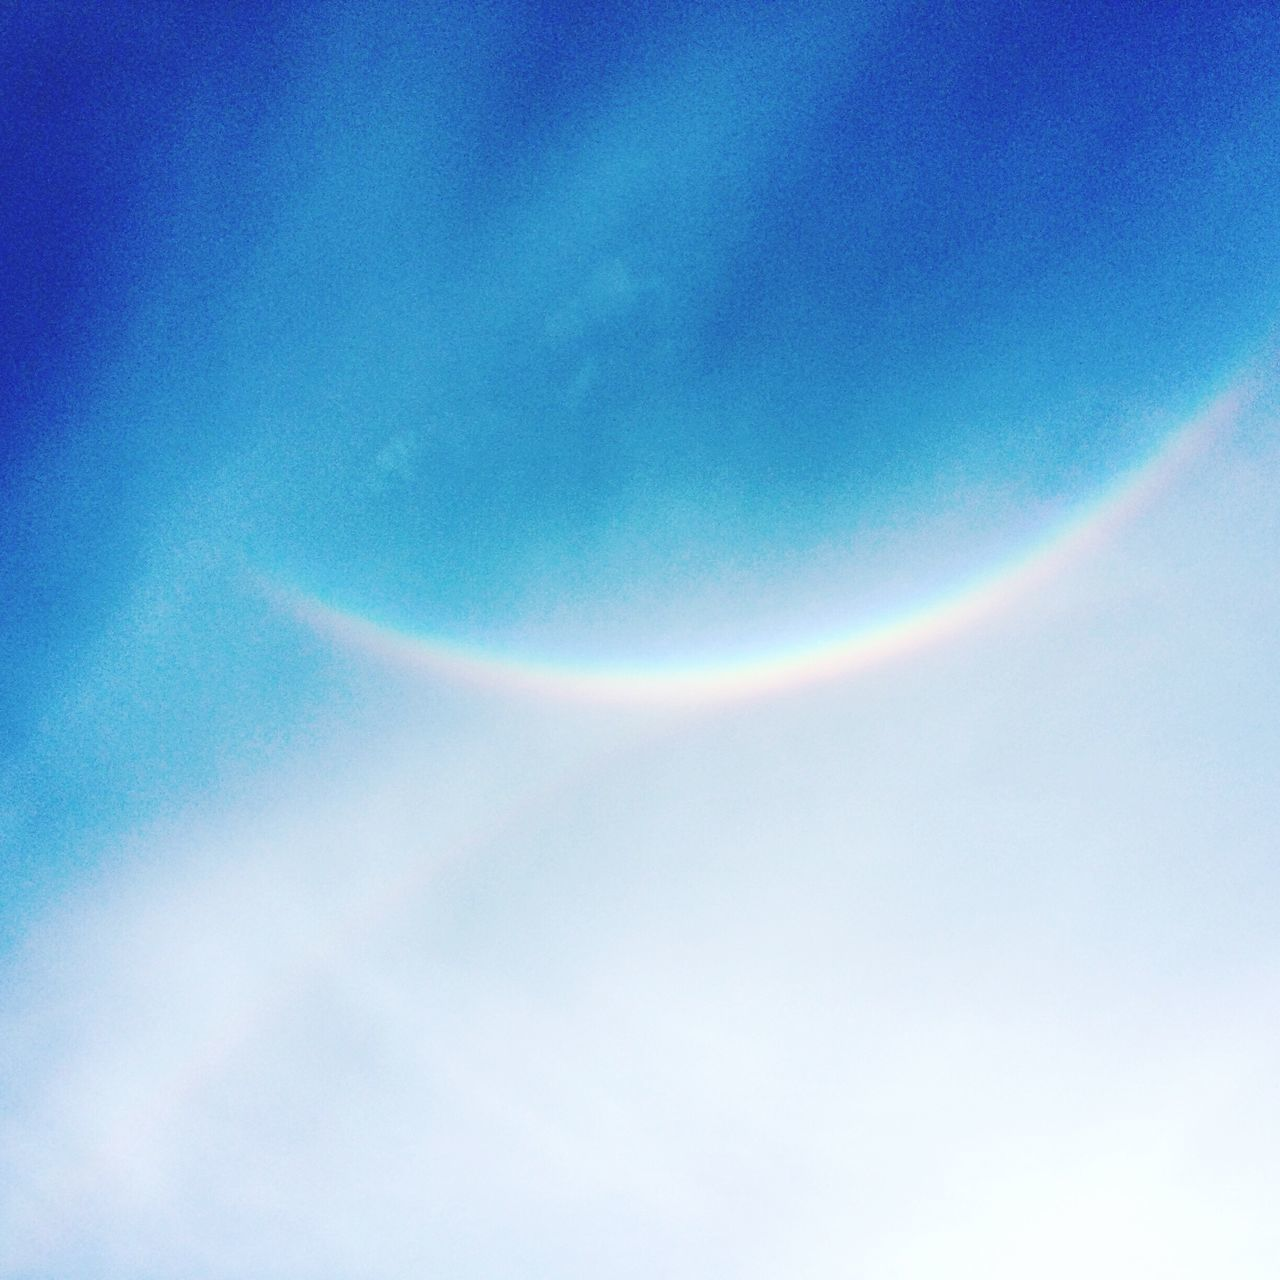 rainbow, beauty in nature, nature, scenics, sky, low angle view, halo, idyllic, no people, double rainbow, outdoors, tranquility, day, blue, natural phenomenon, sky only, spectrum, vapor trail, astronomy